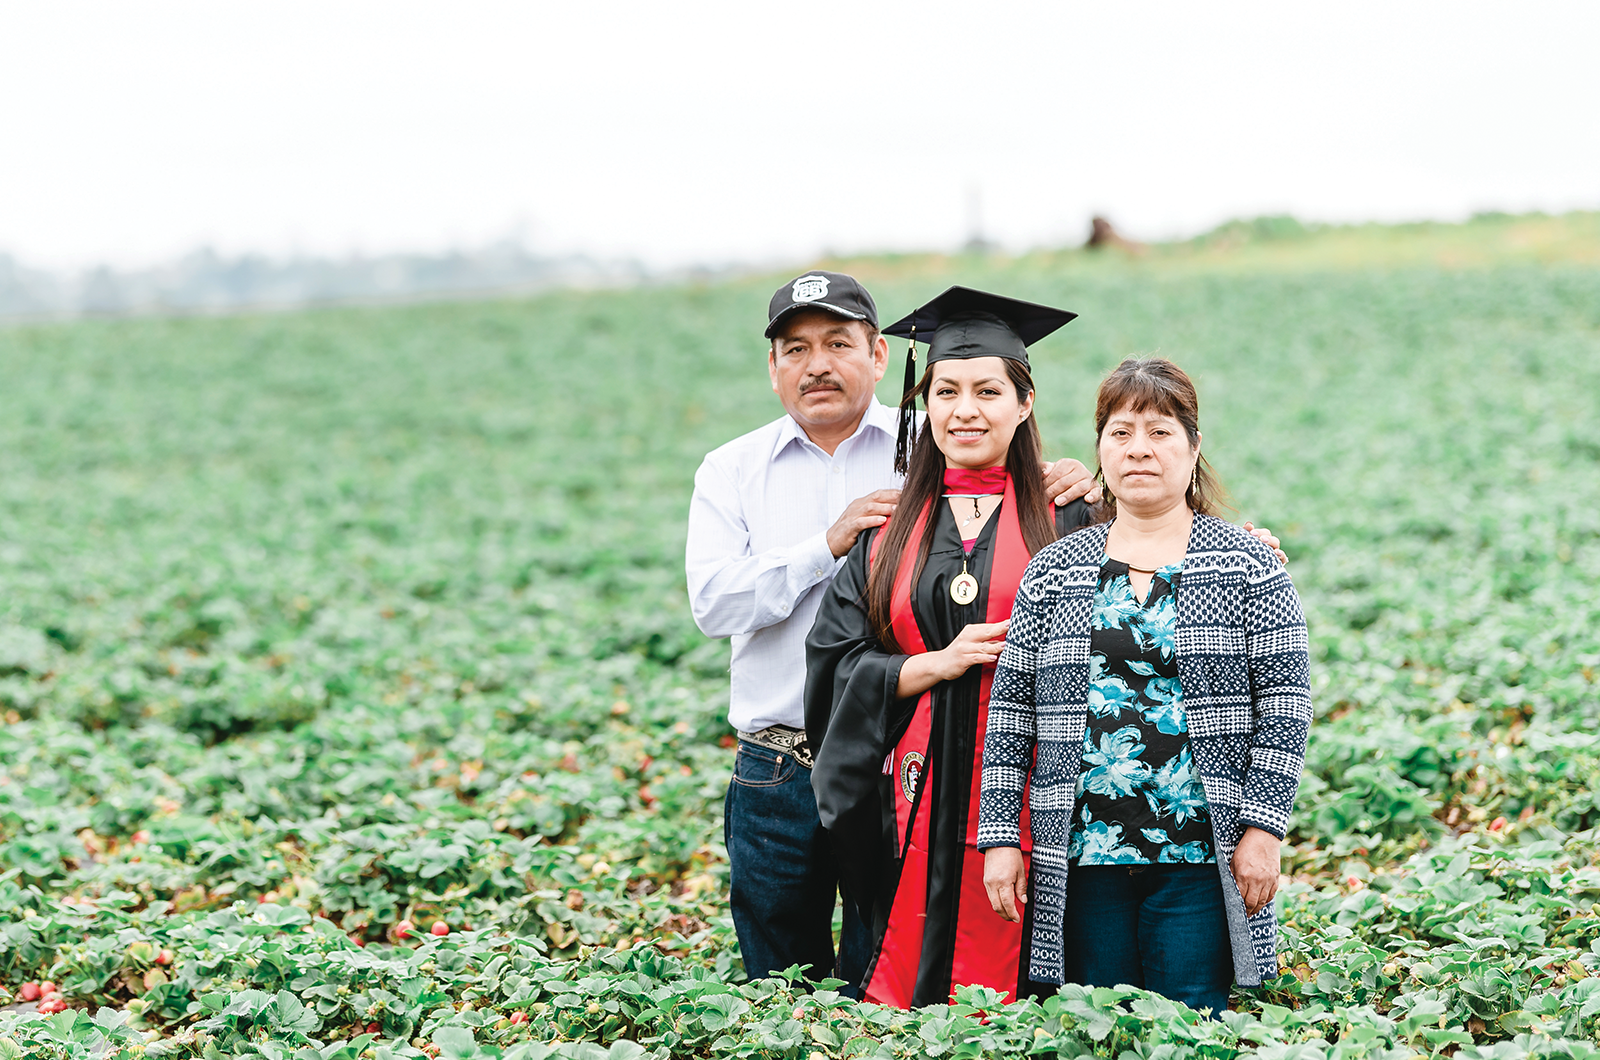 College grad stands in fruit field with parents